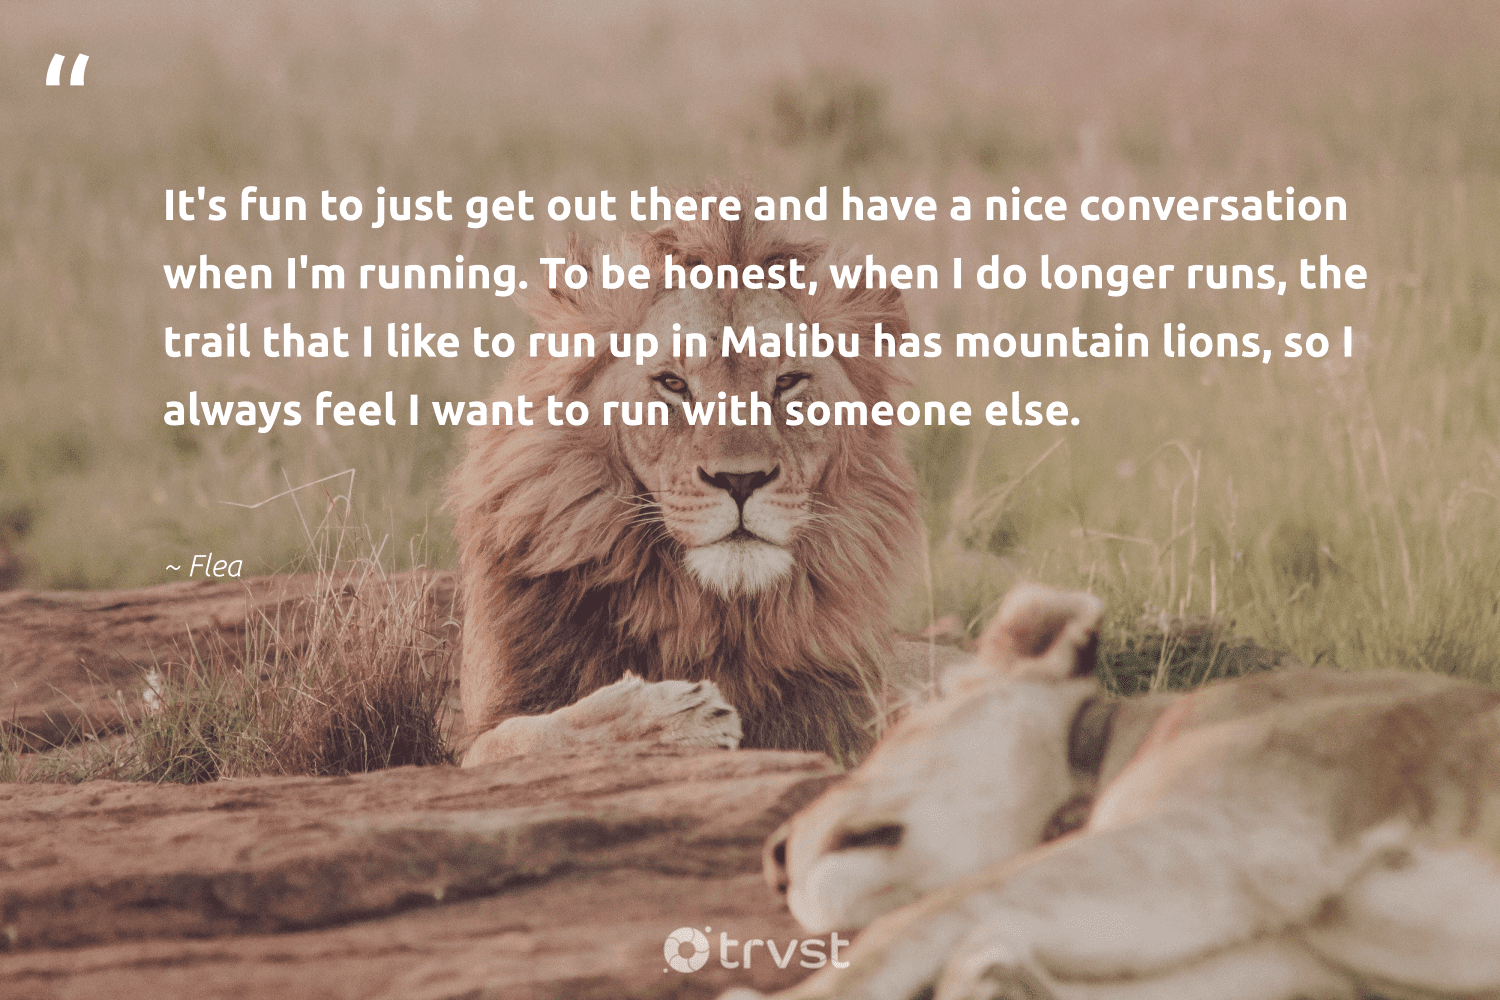 """""""It's fun to just get out there and have a nice conversation when I'm running. To be honest, when I do longer runs, the trail that I like to run up in Malibu has mountain lions, so I always feel I want to run with someone else.""""  - Flea #trvst #quotes #mountain #lions #sustainability #bethechange #wildlife #ecoconscious #protectnature #socialimpact #perfectnature #dotherightthing"""